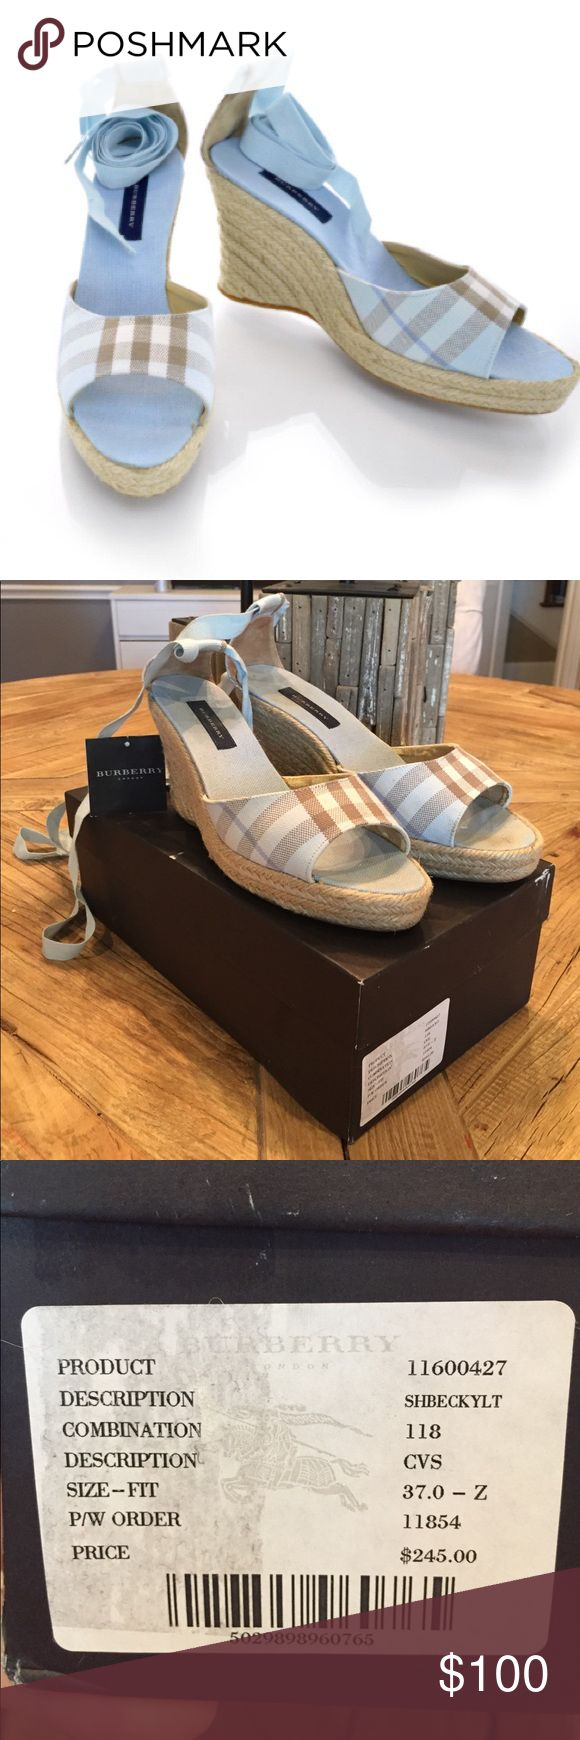 Authentic Burberry size 37 nova check wedge These are authentic Burberry size 37 nova check wedge. These chic espadrilles have a one inch platform and a three inch wedge. These have open straps of nova check canvas in blue with an ankle strap. These are marvelous espadrilles, with a distinctive look, from Burberry.  They are in great condition on the outside but the inside has peeling. I took a picture of the peeling. It isn't noticeable while wearing them.  Retail $245. Box included…